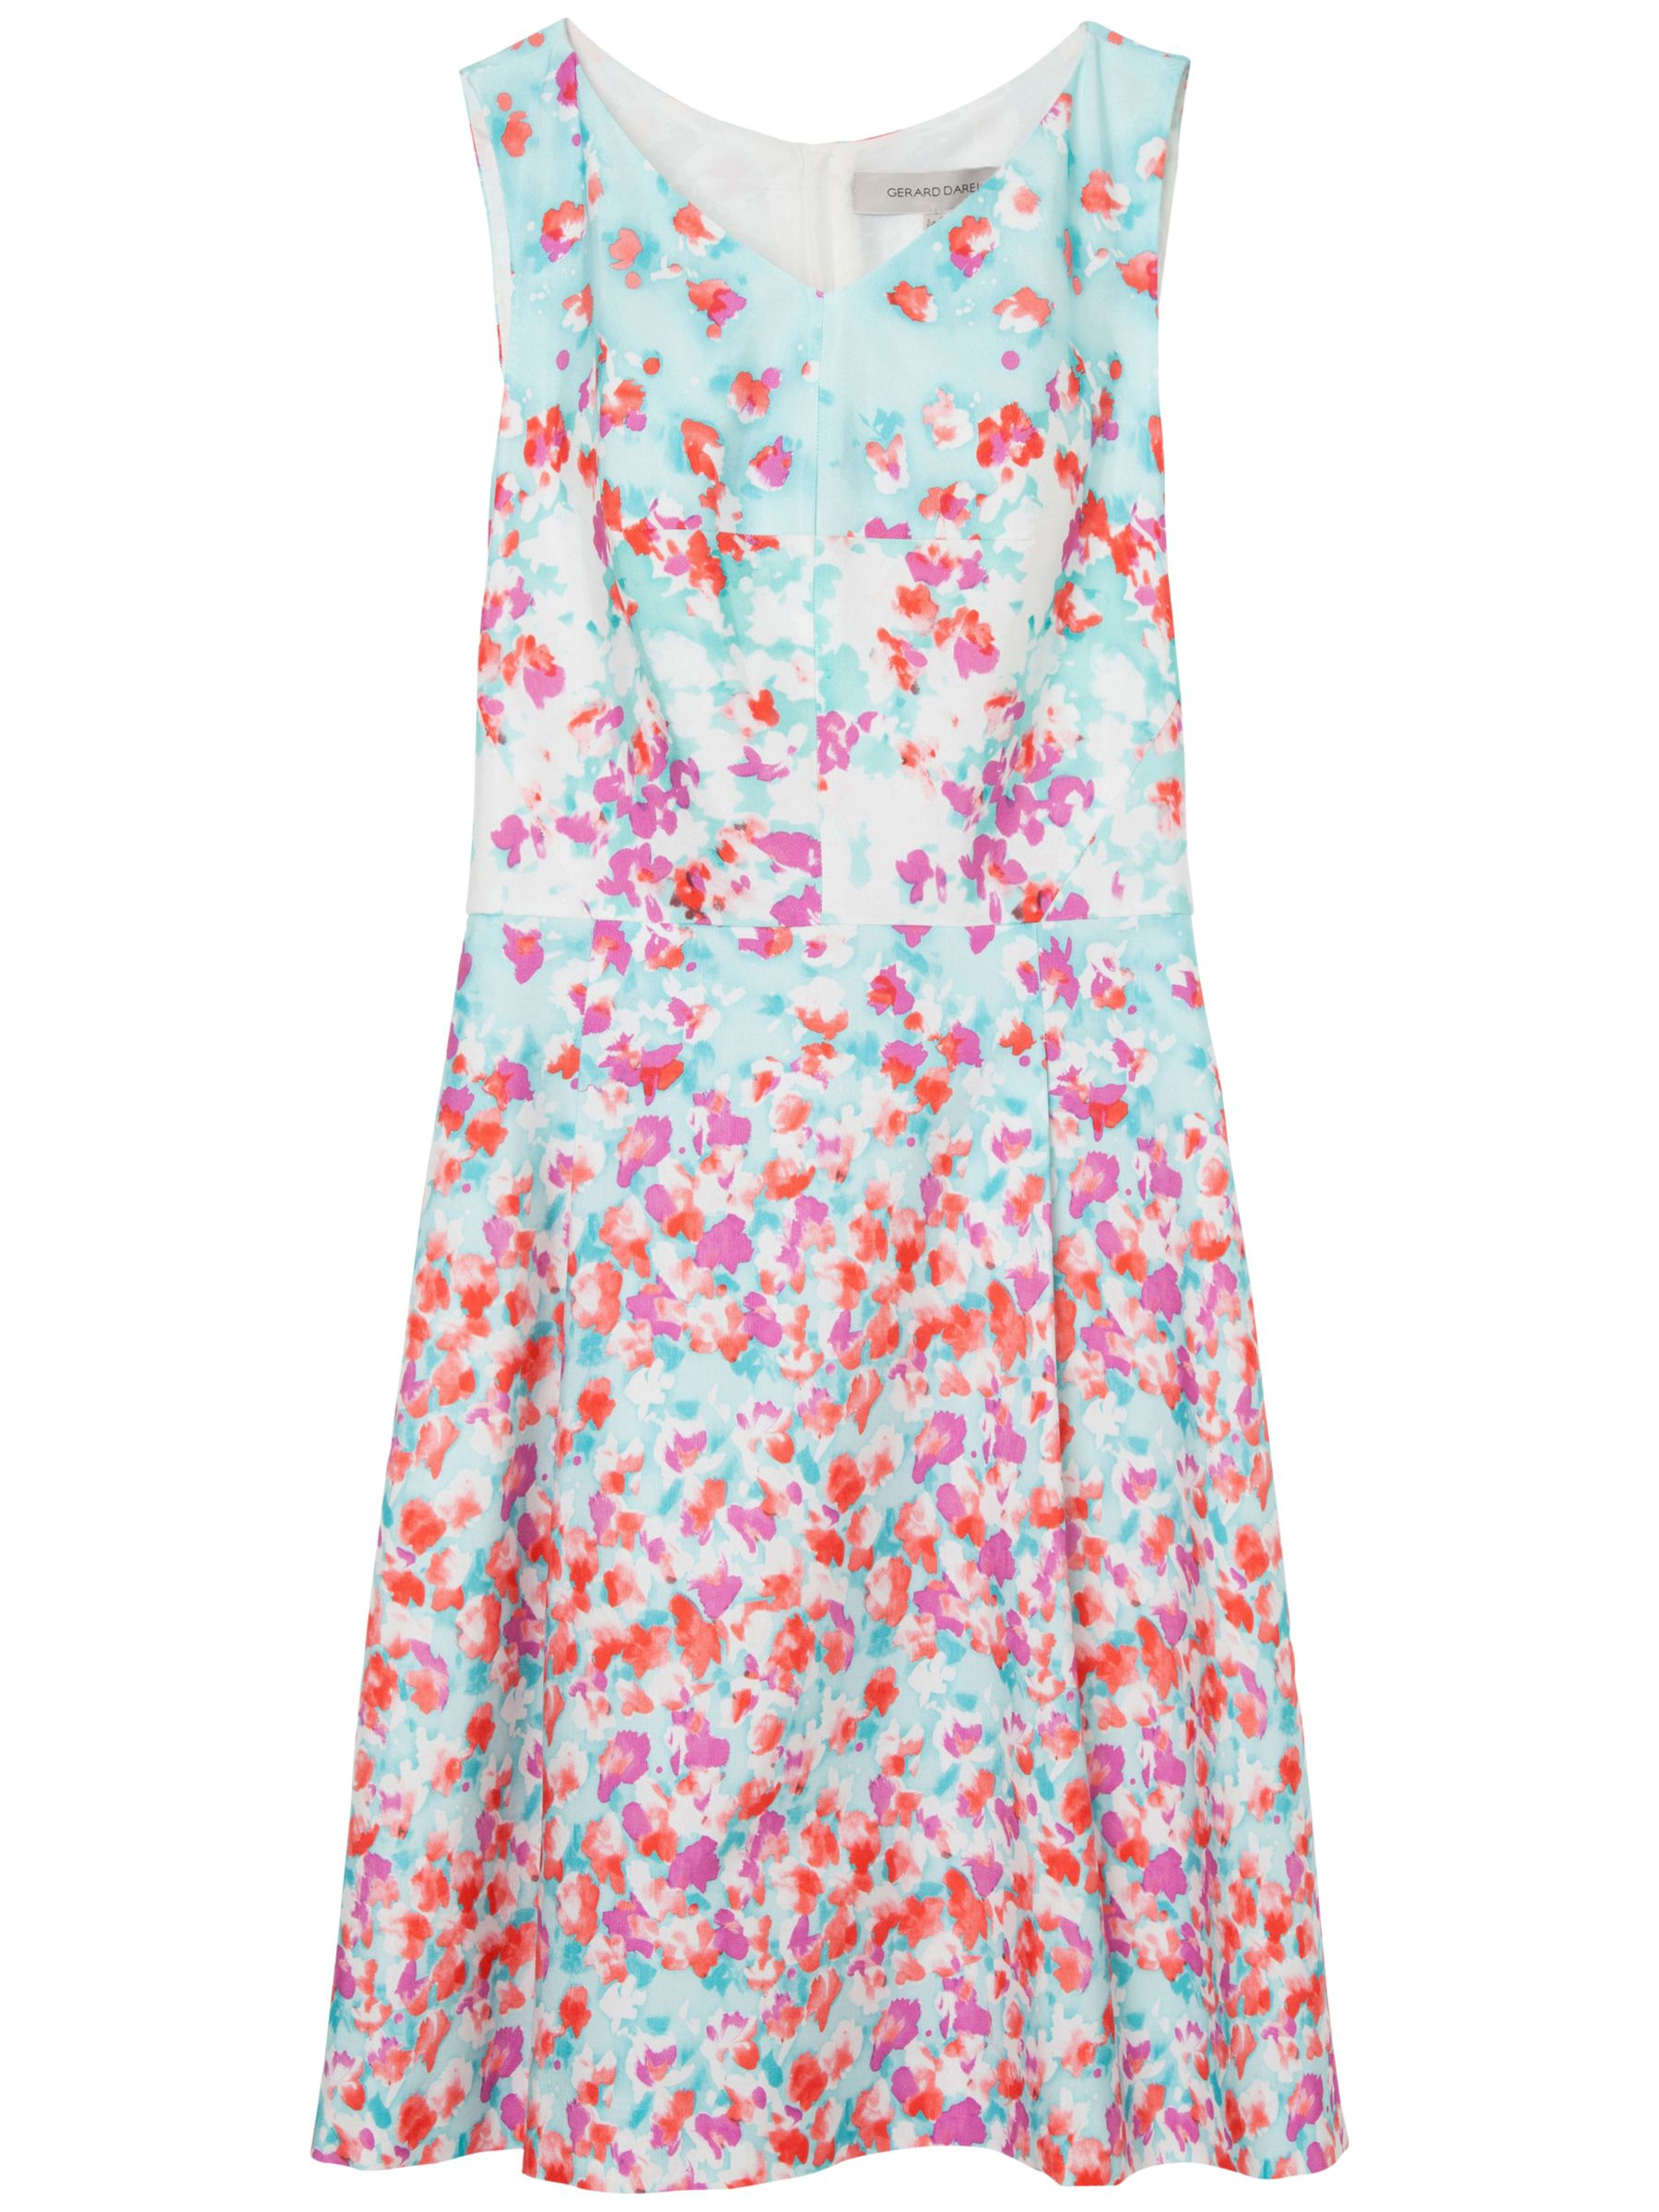 gerard darel anna dress aqua, gerard, darel, anna, dress, aqua, gerard darel, 18|8|14|12|6|16|10, women, womens dresses, gifts, wedding, wedding clothing, female guests, 1935417